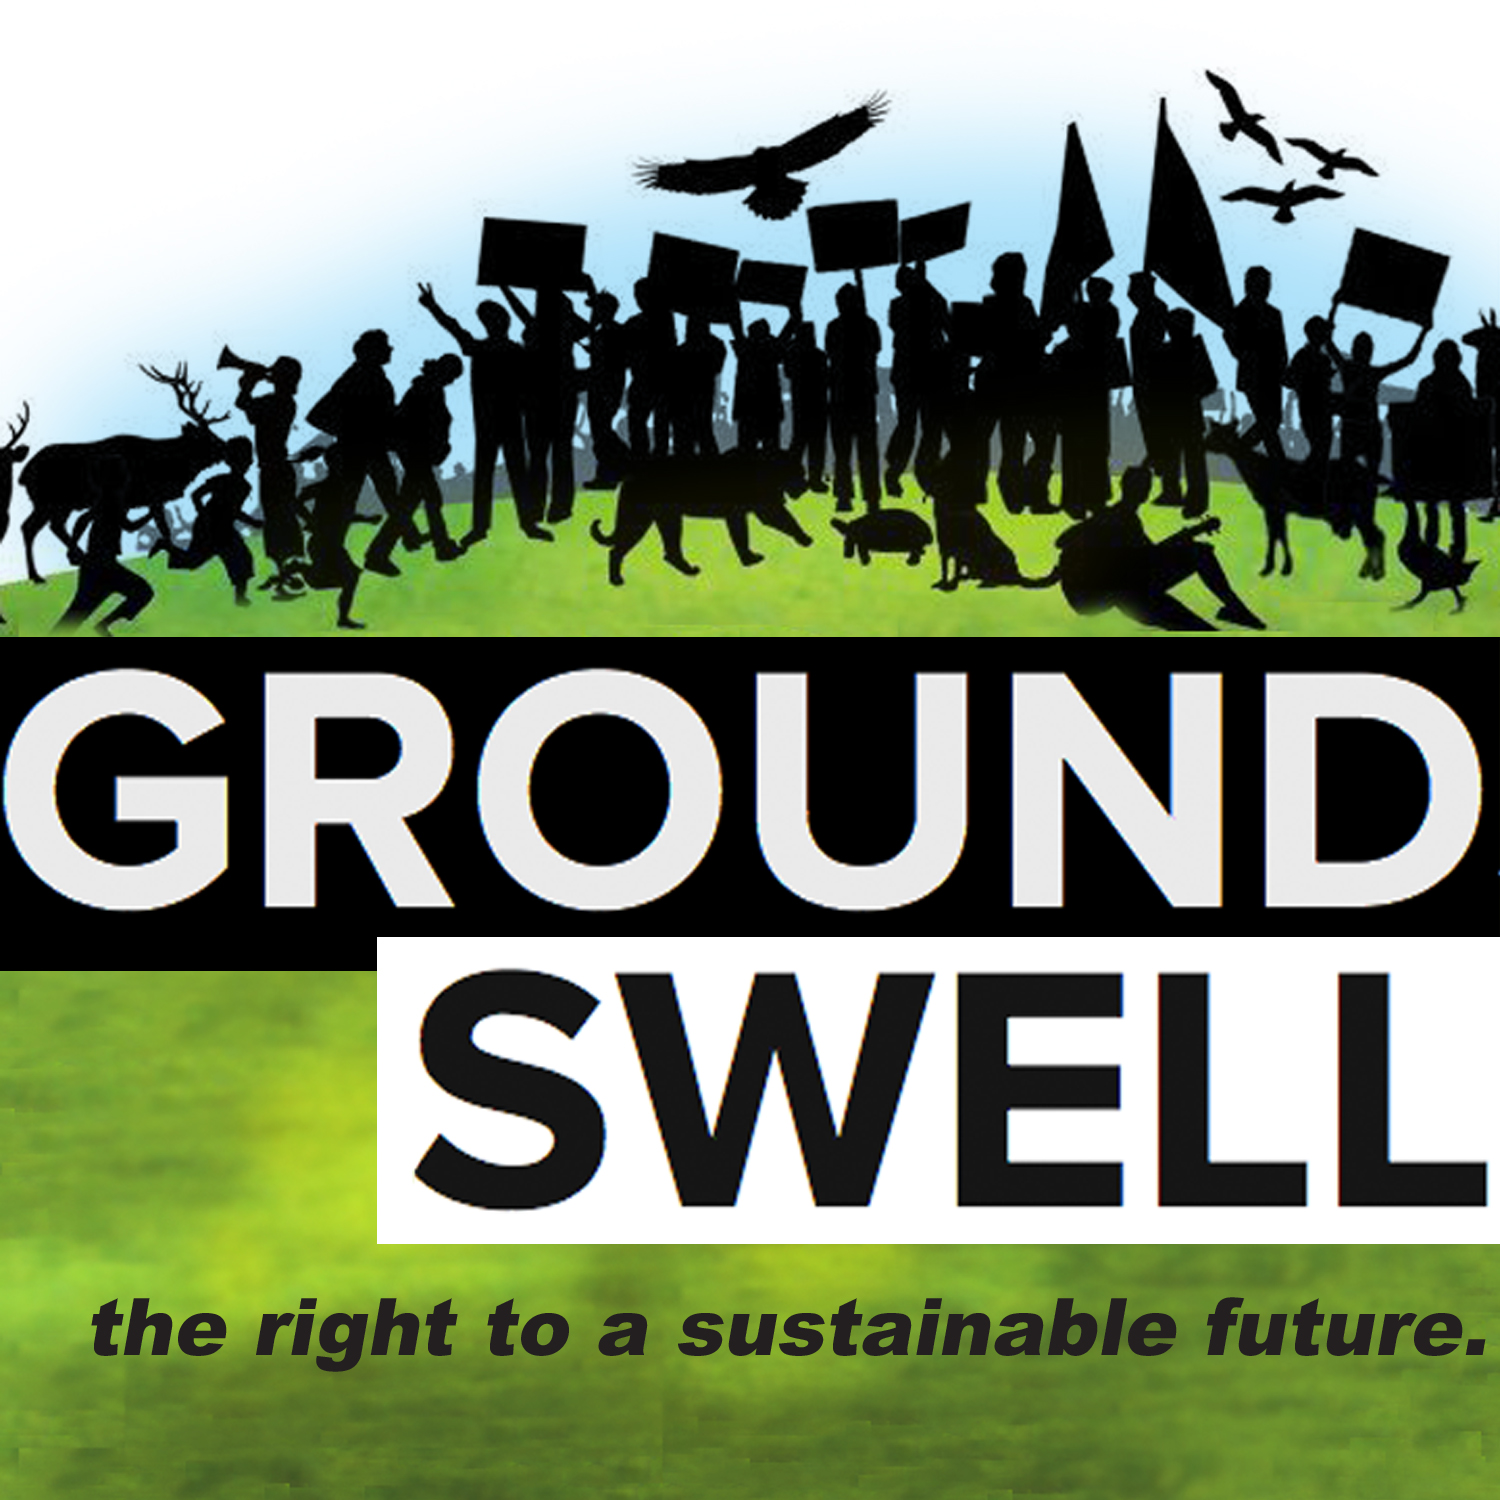 A CITIZEN'S MOVEMENT FOR ENVIRONMENTAL RIGHTS.